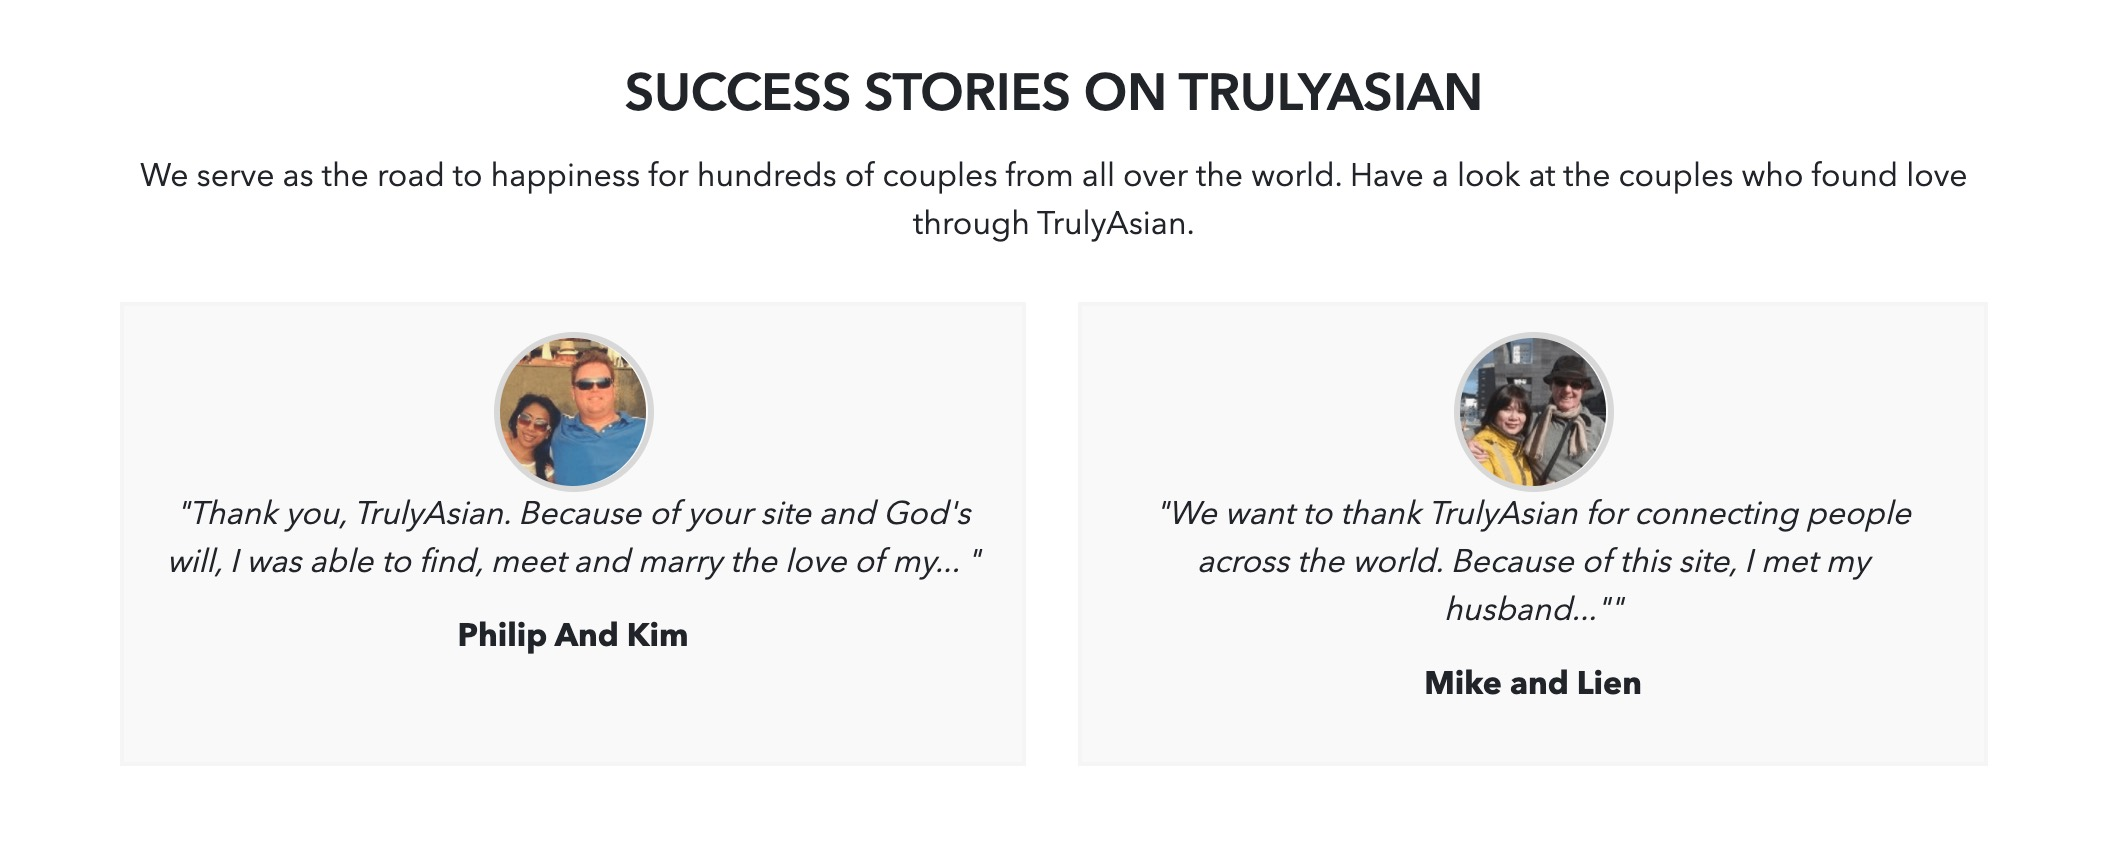 TrulyAsian success stories